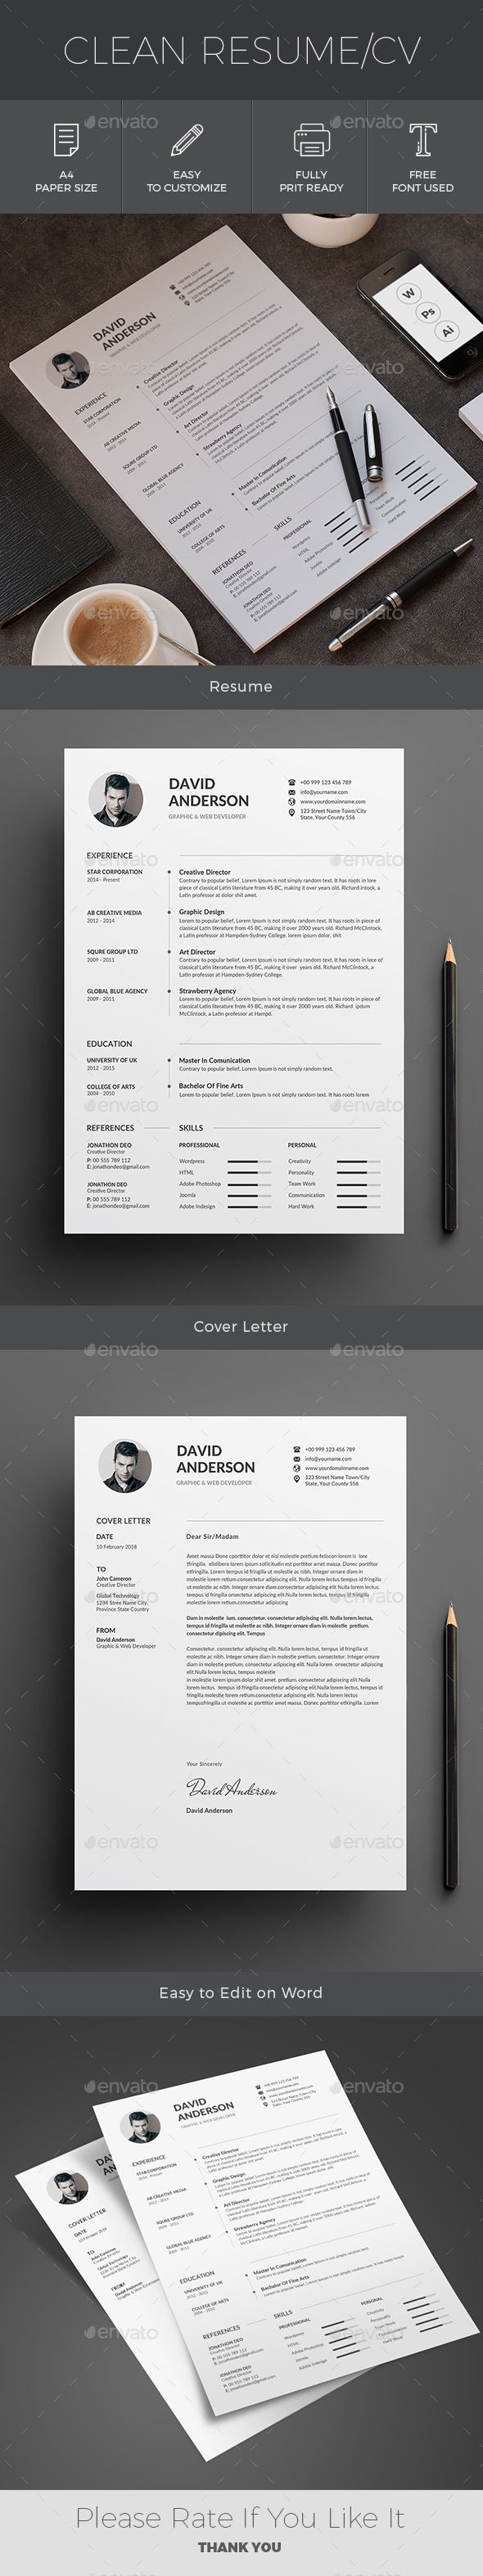 Cv Templates Design%0A Resume  u     AI Illustrator  cv template  word  u     Download     https